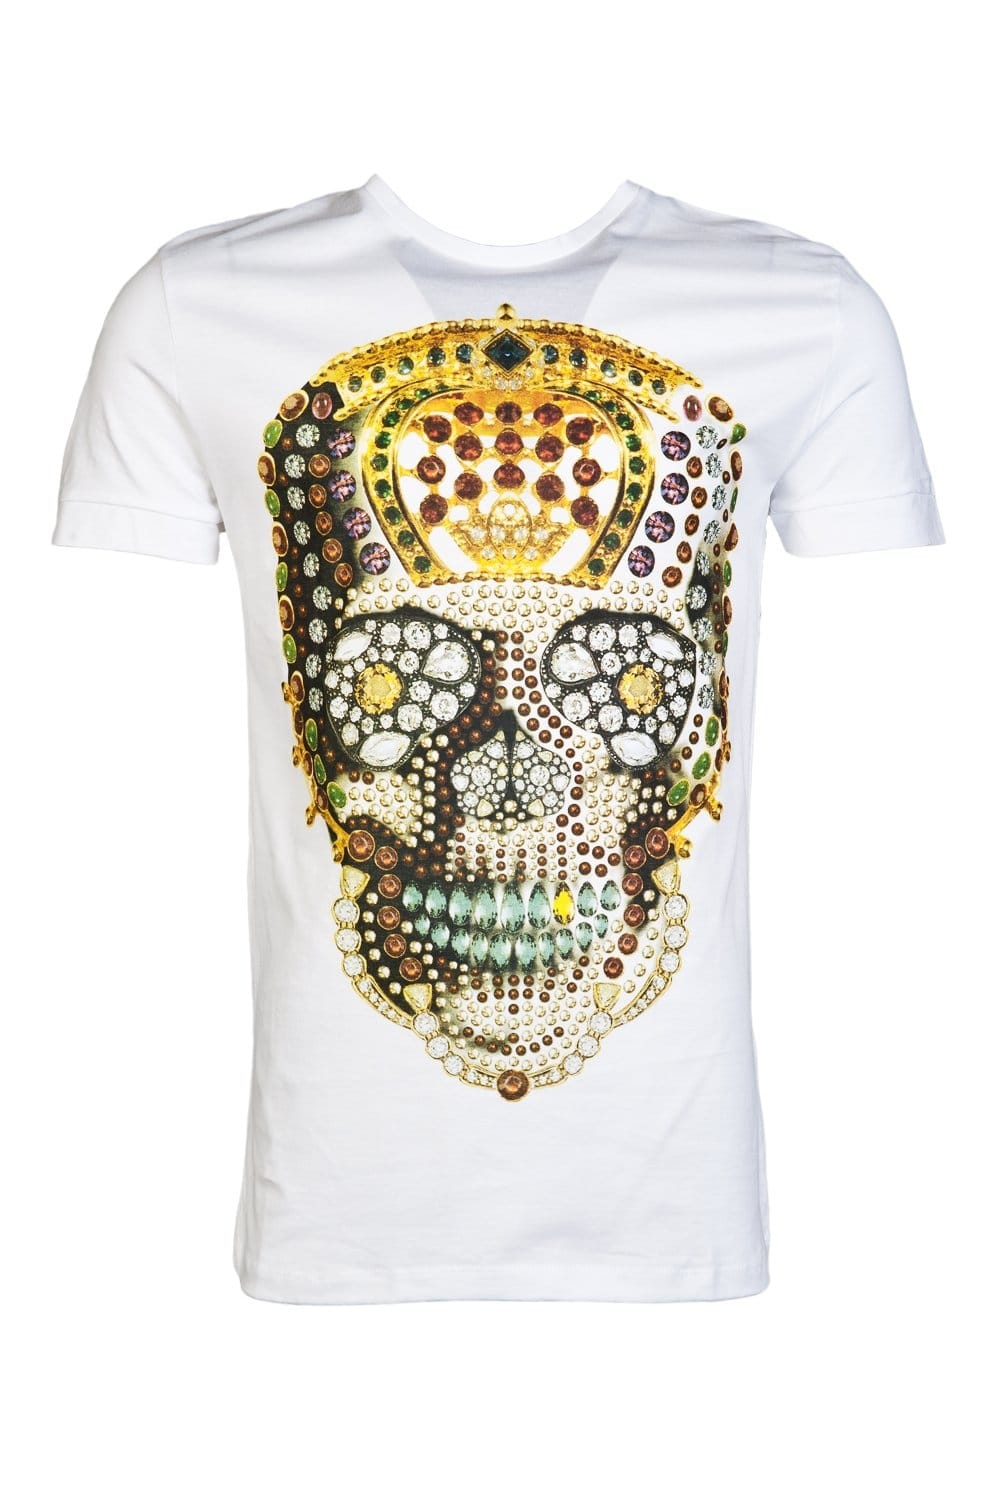 Antony morato printed designer t shirt in white for Luxury t shirt printing